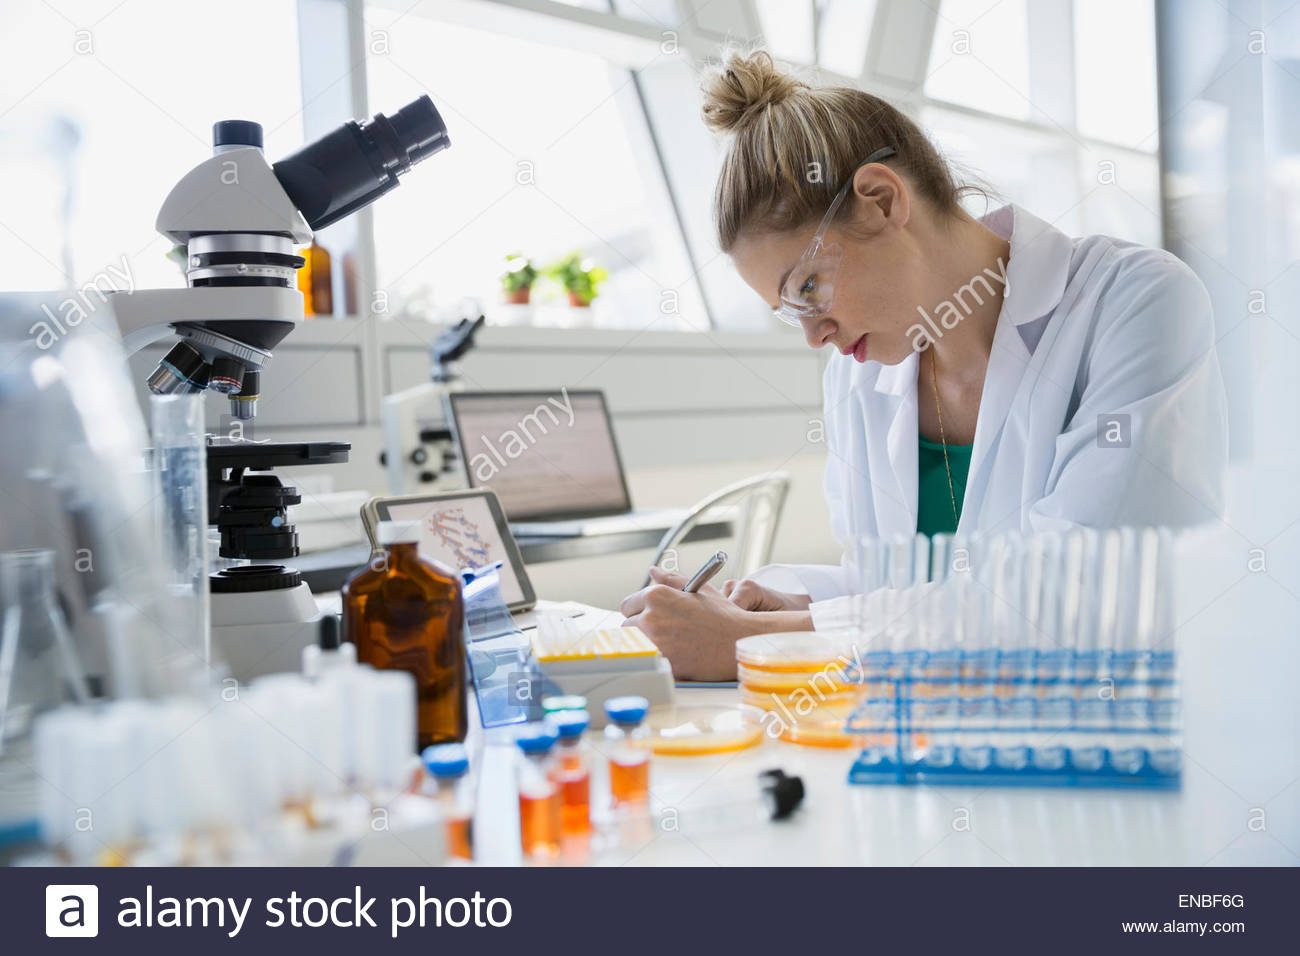 Scientist taking notes on scientific experiment - Stock Image